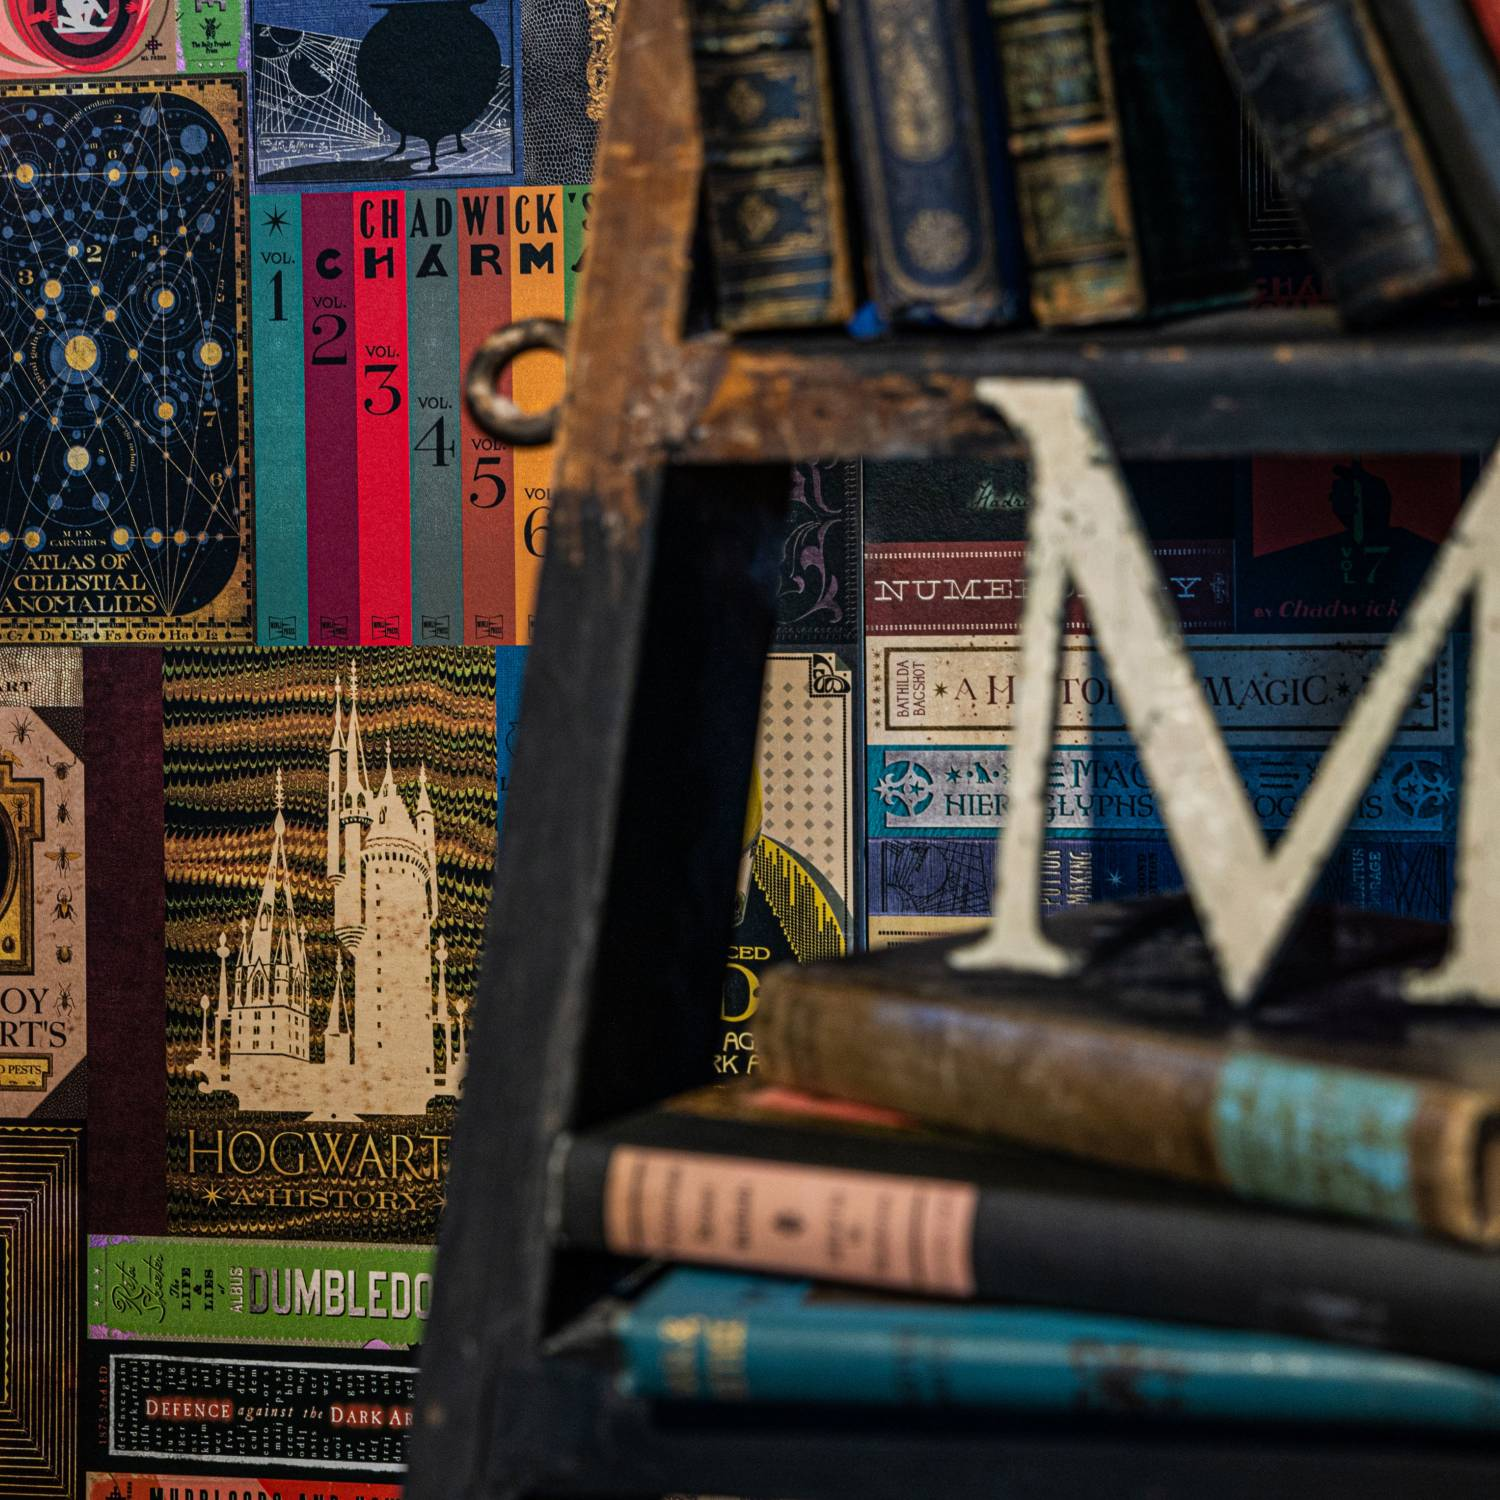 Hogwarts Library Book Covers Wallpaper Curiosa Purveyors